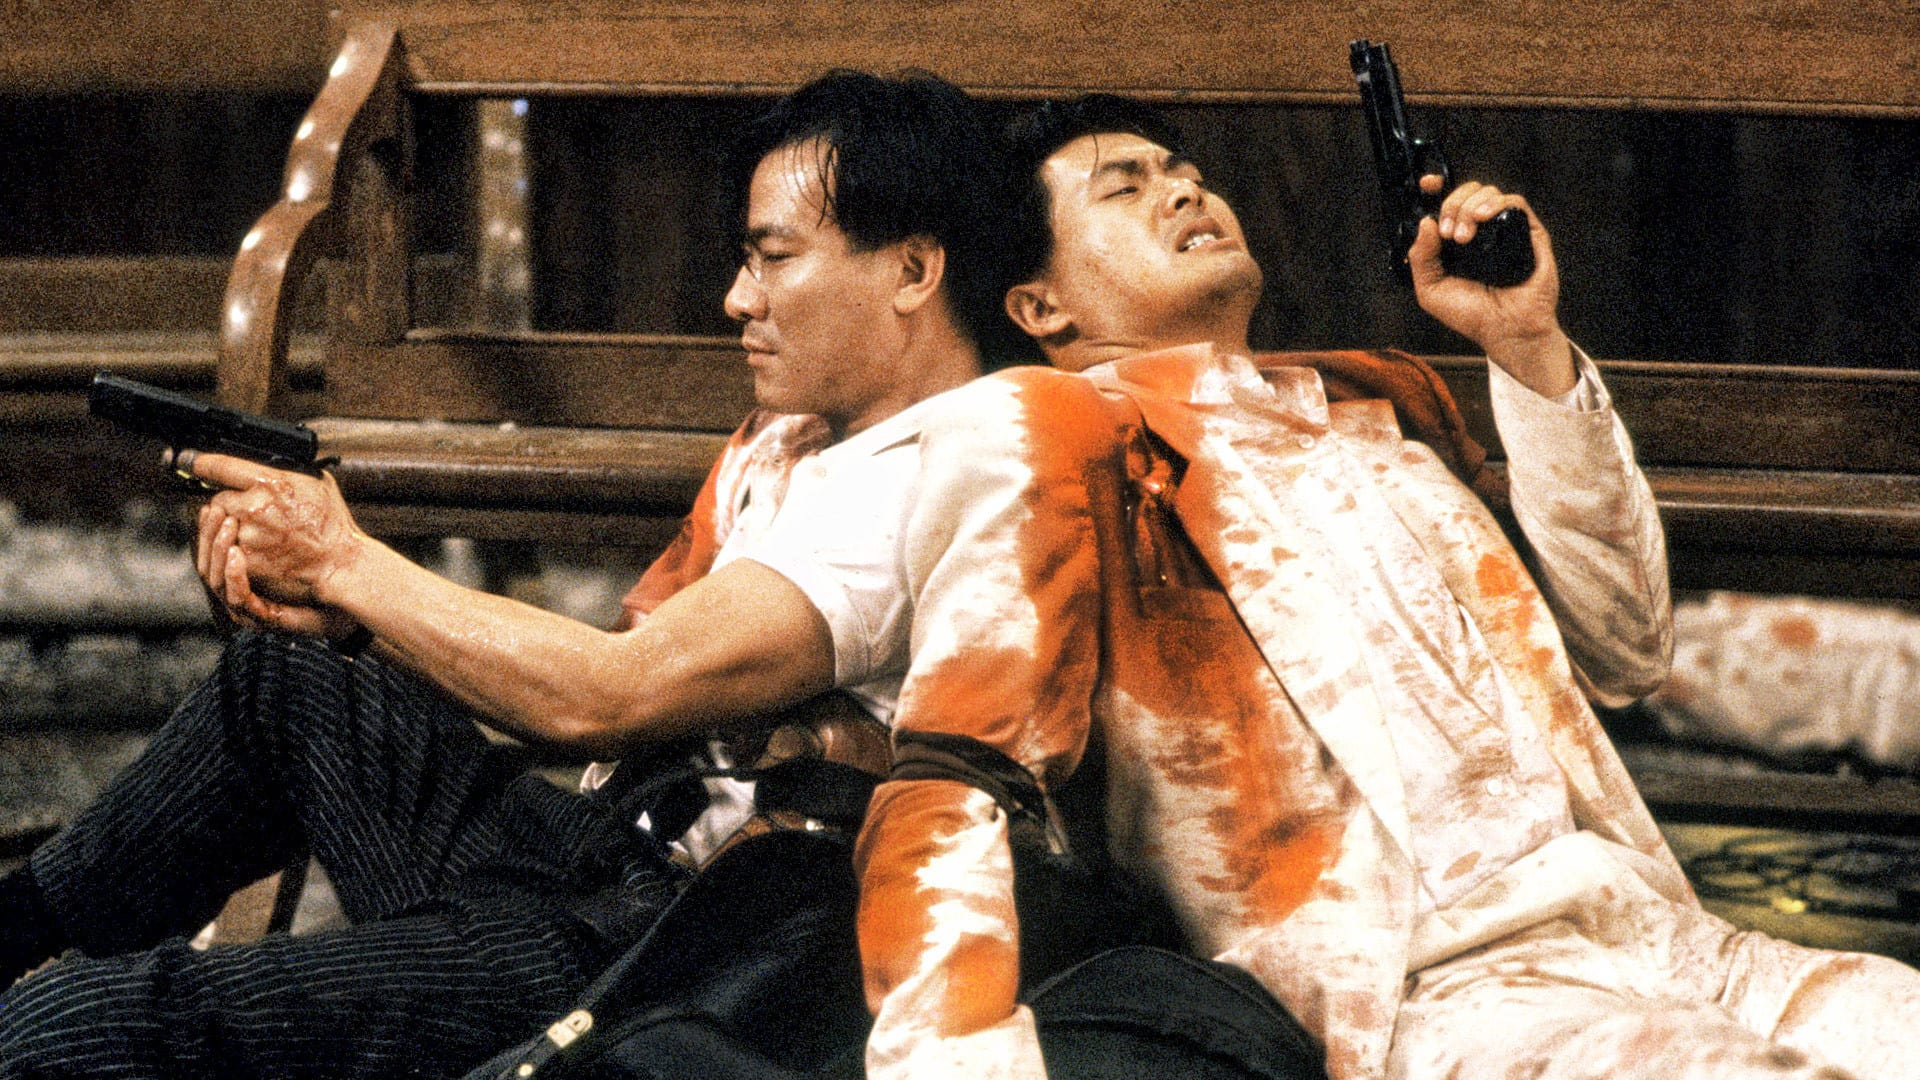 Two men sitting on the floor, holding guns back to back